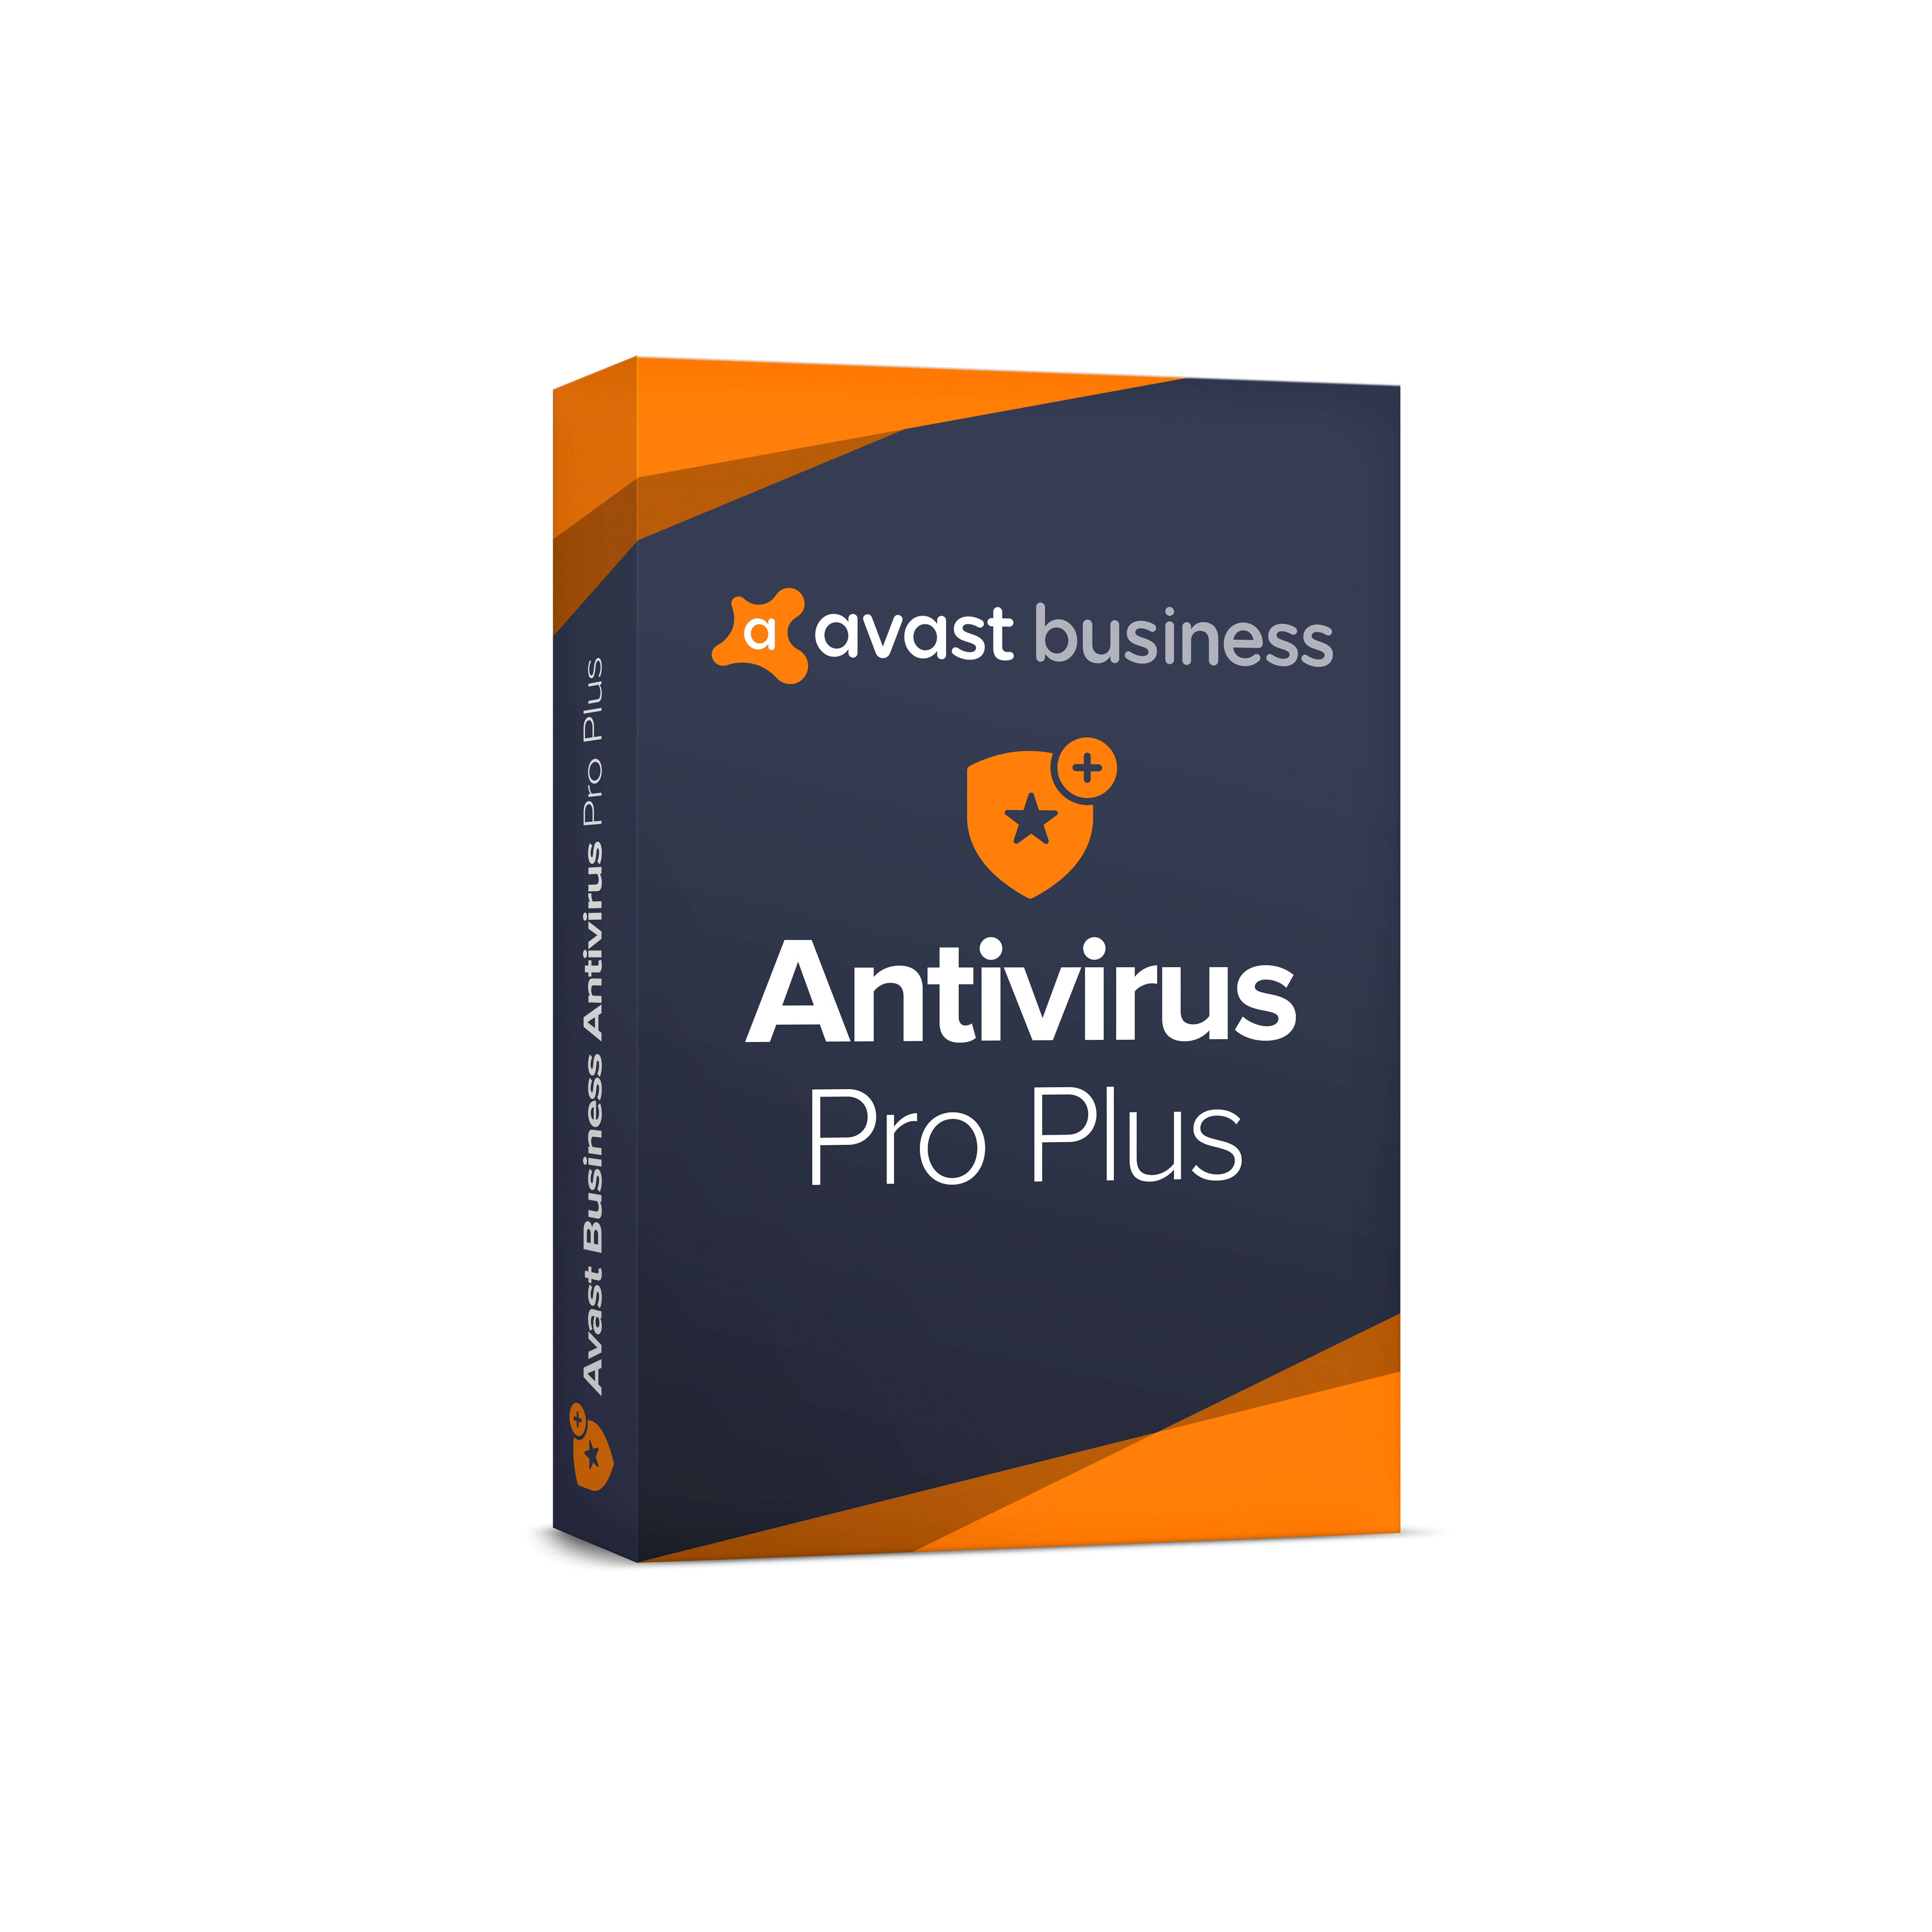 Avast_business_antivirus_Pro_Plus